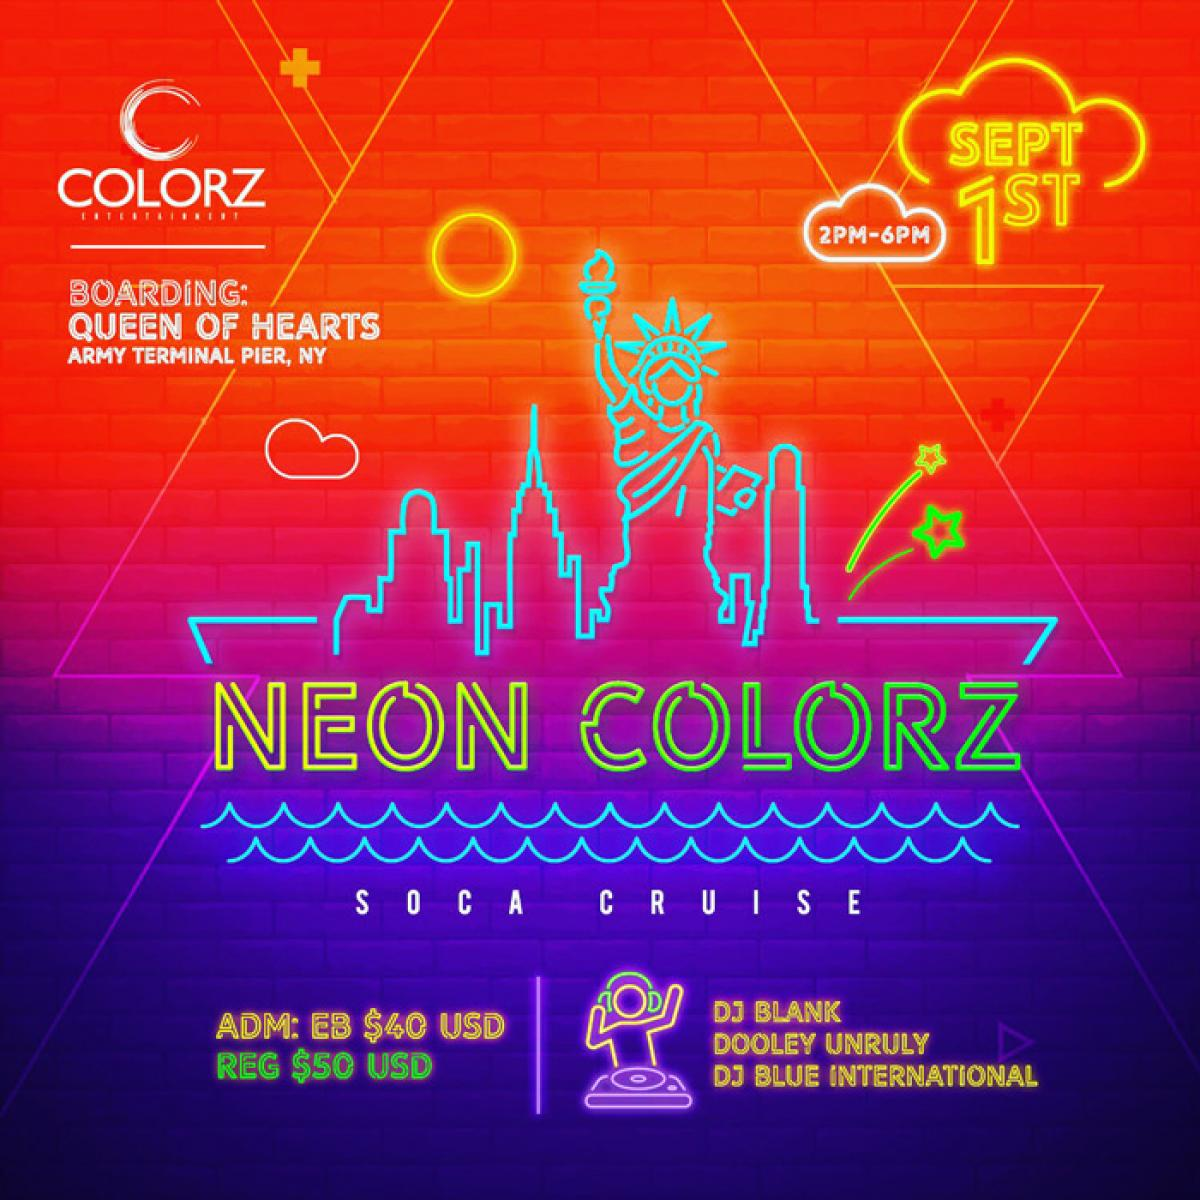 Neon Colorz flyer or graphic.